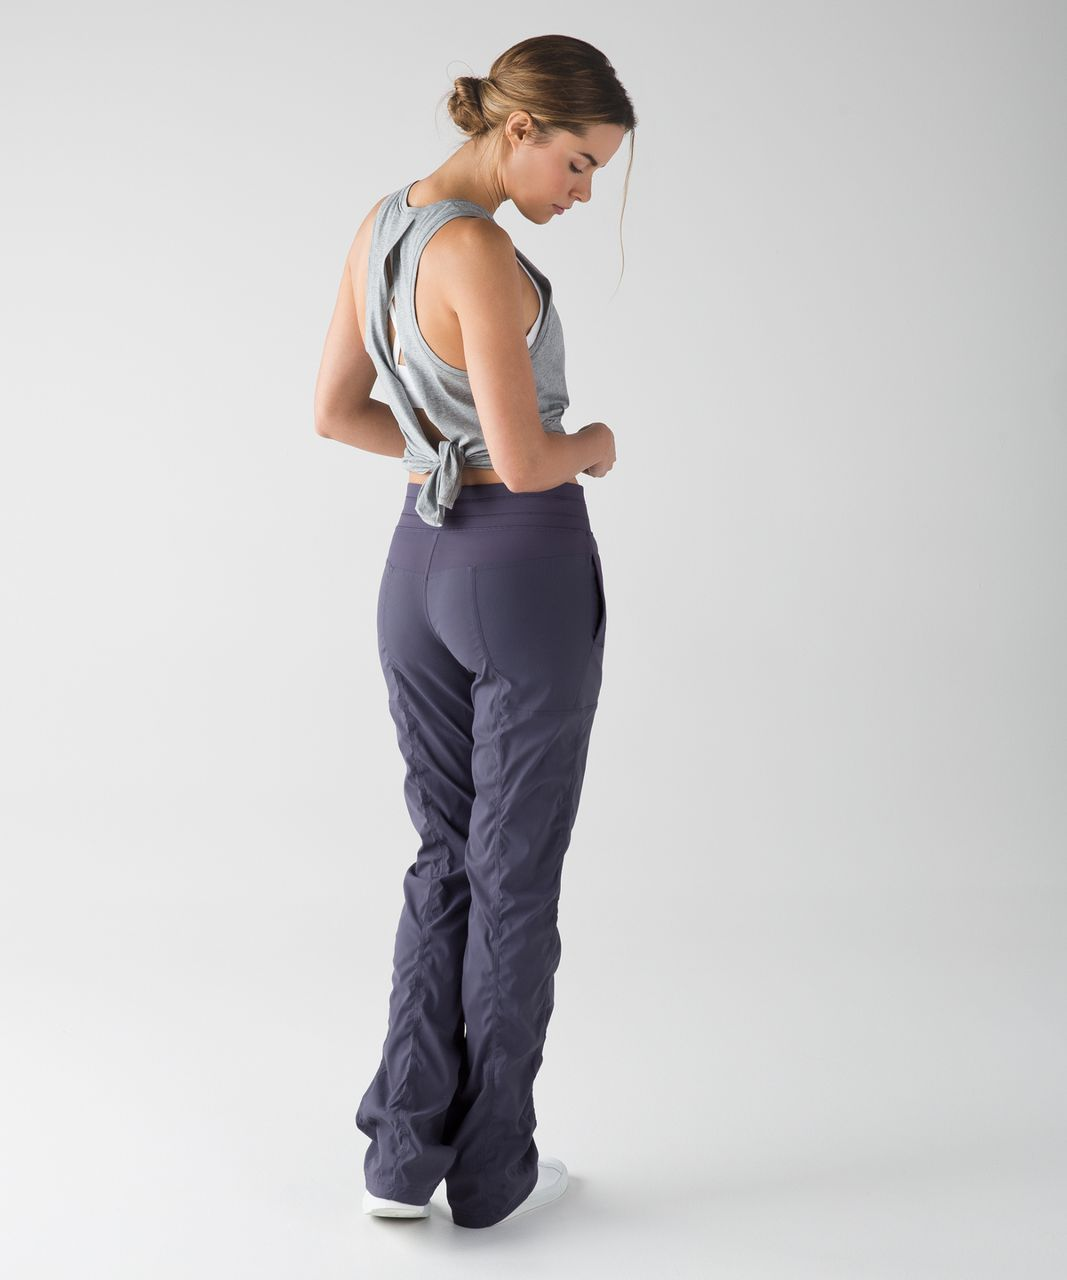 Lululemon Studio Pant III (Tall) (Unlined) - Greyvy